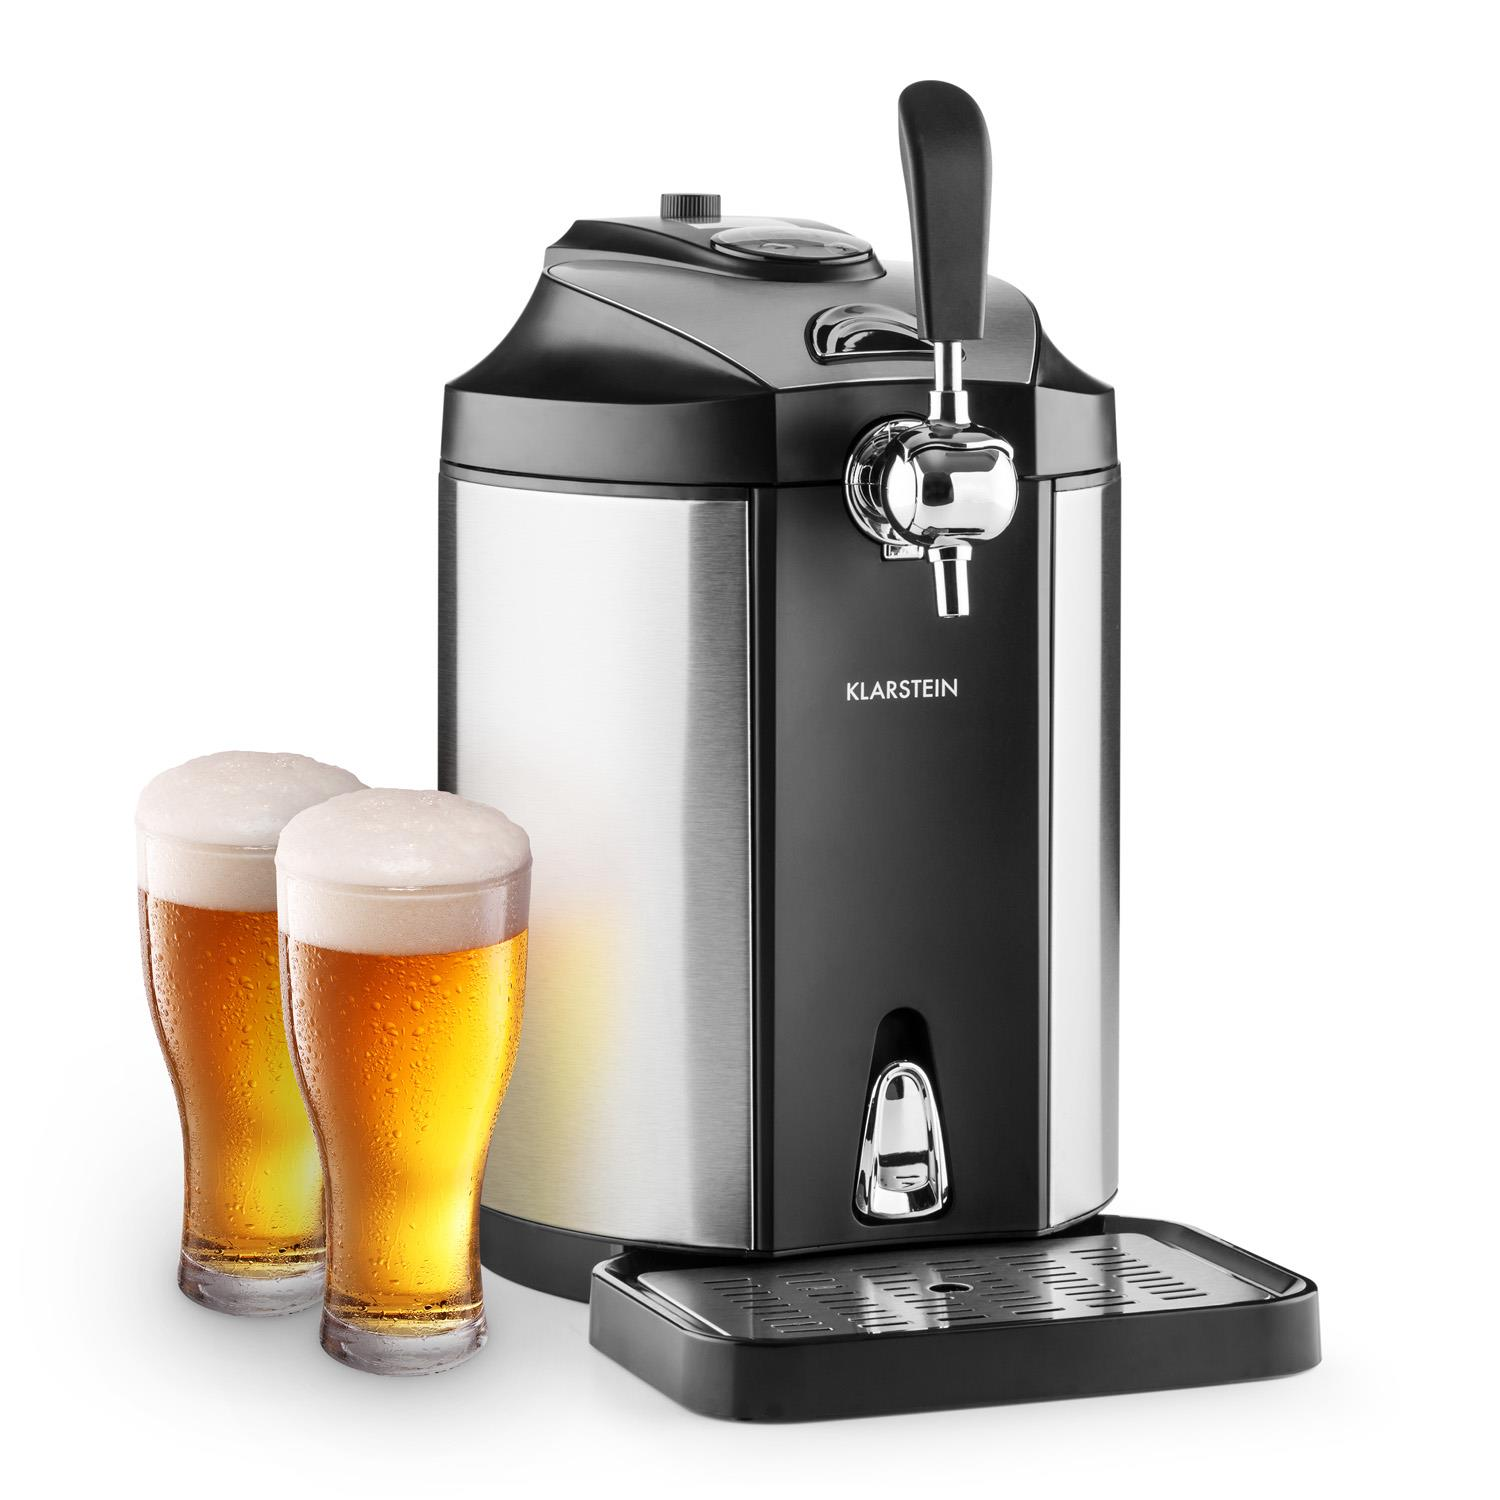 Countertop Beer Cooler And Tap Klarstein Skal Beer Tap Dispenser Beer Cooler 5 L Kegs Co2